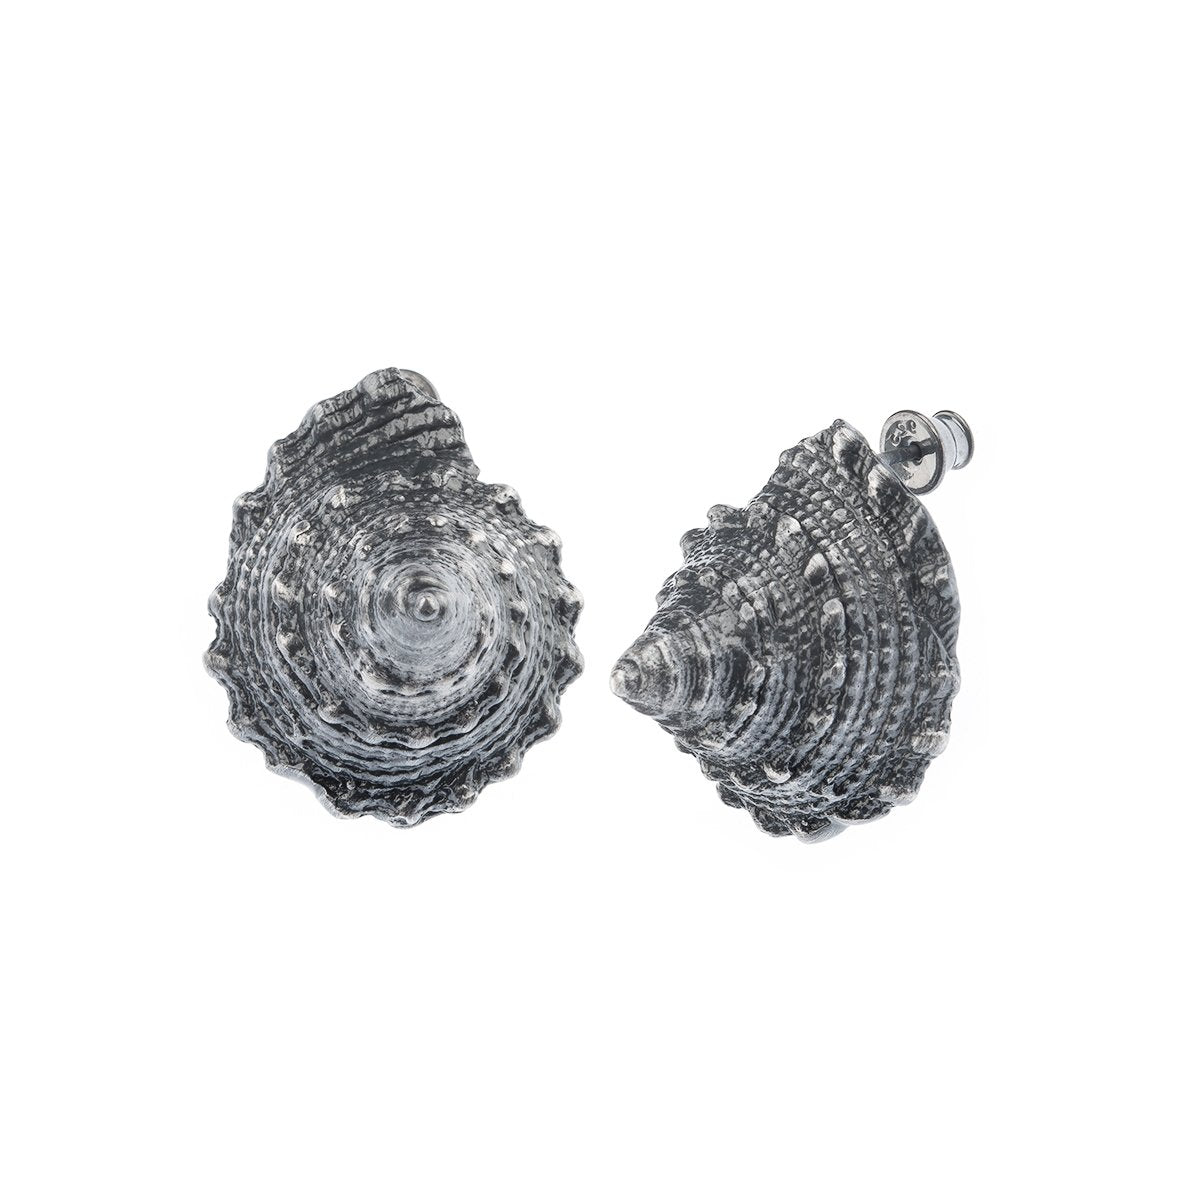 Earrings from Maris collection - MK24-2